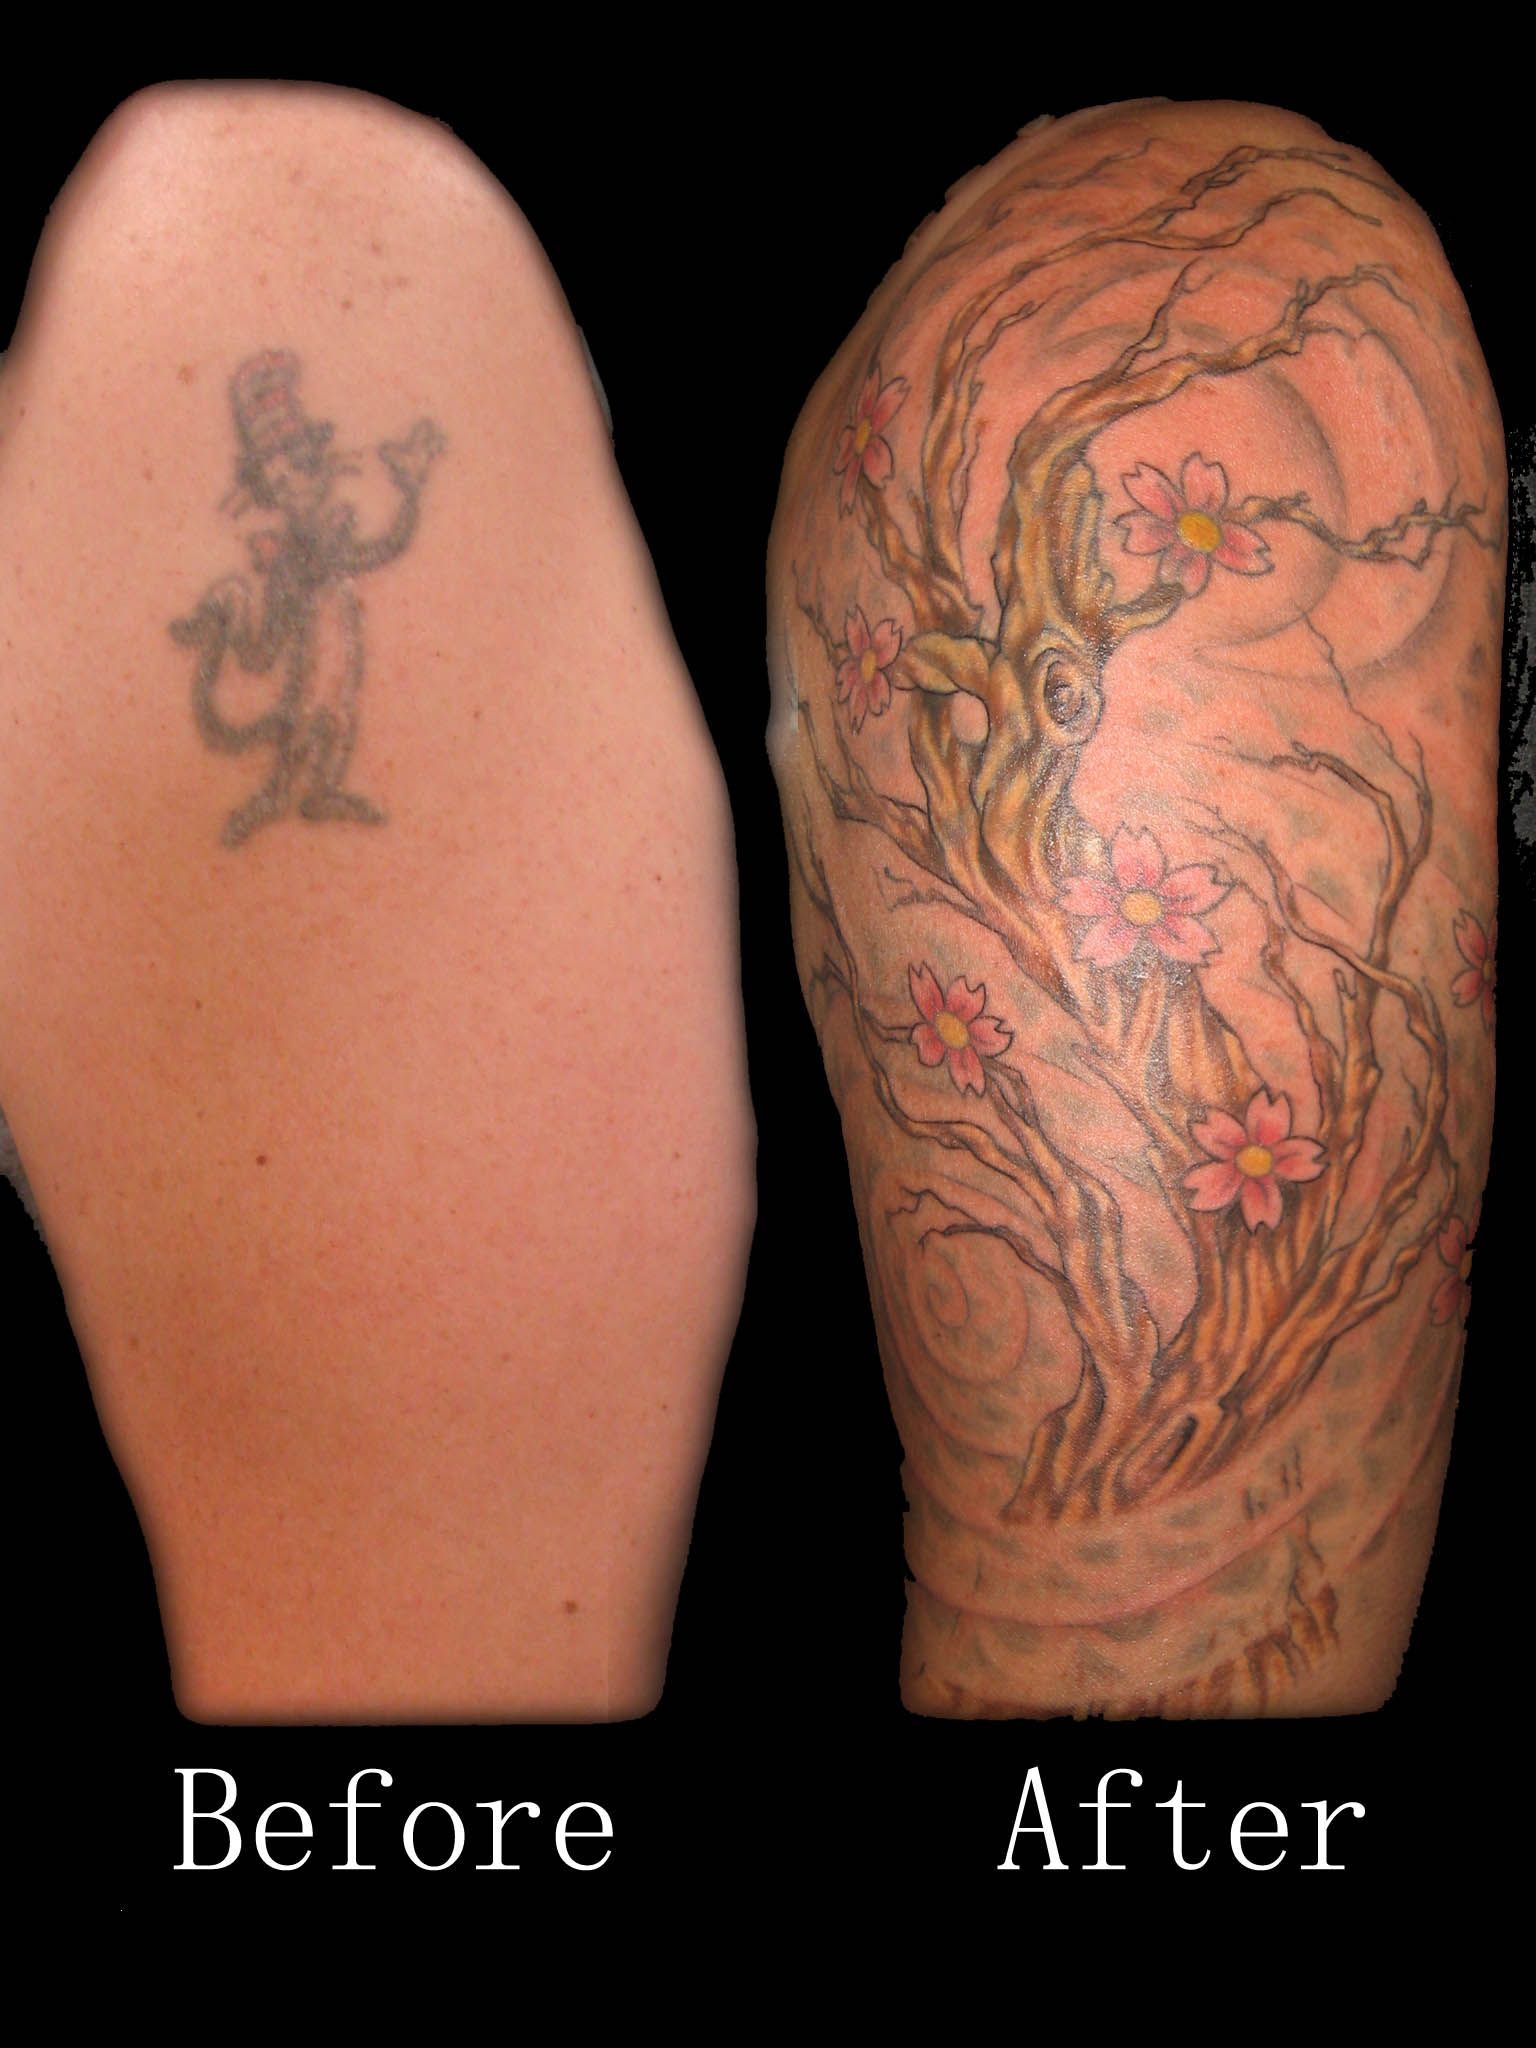 Before And After Tattoo